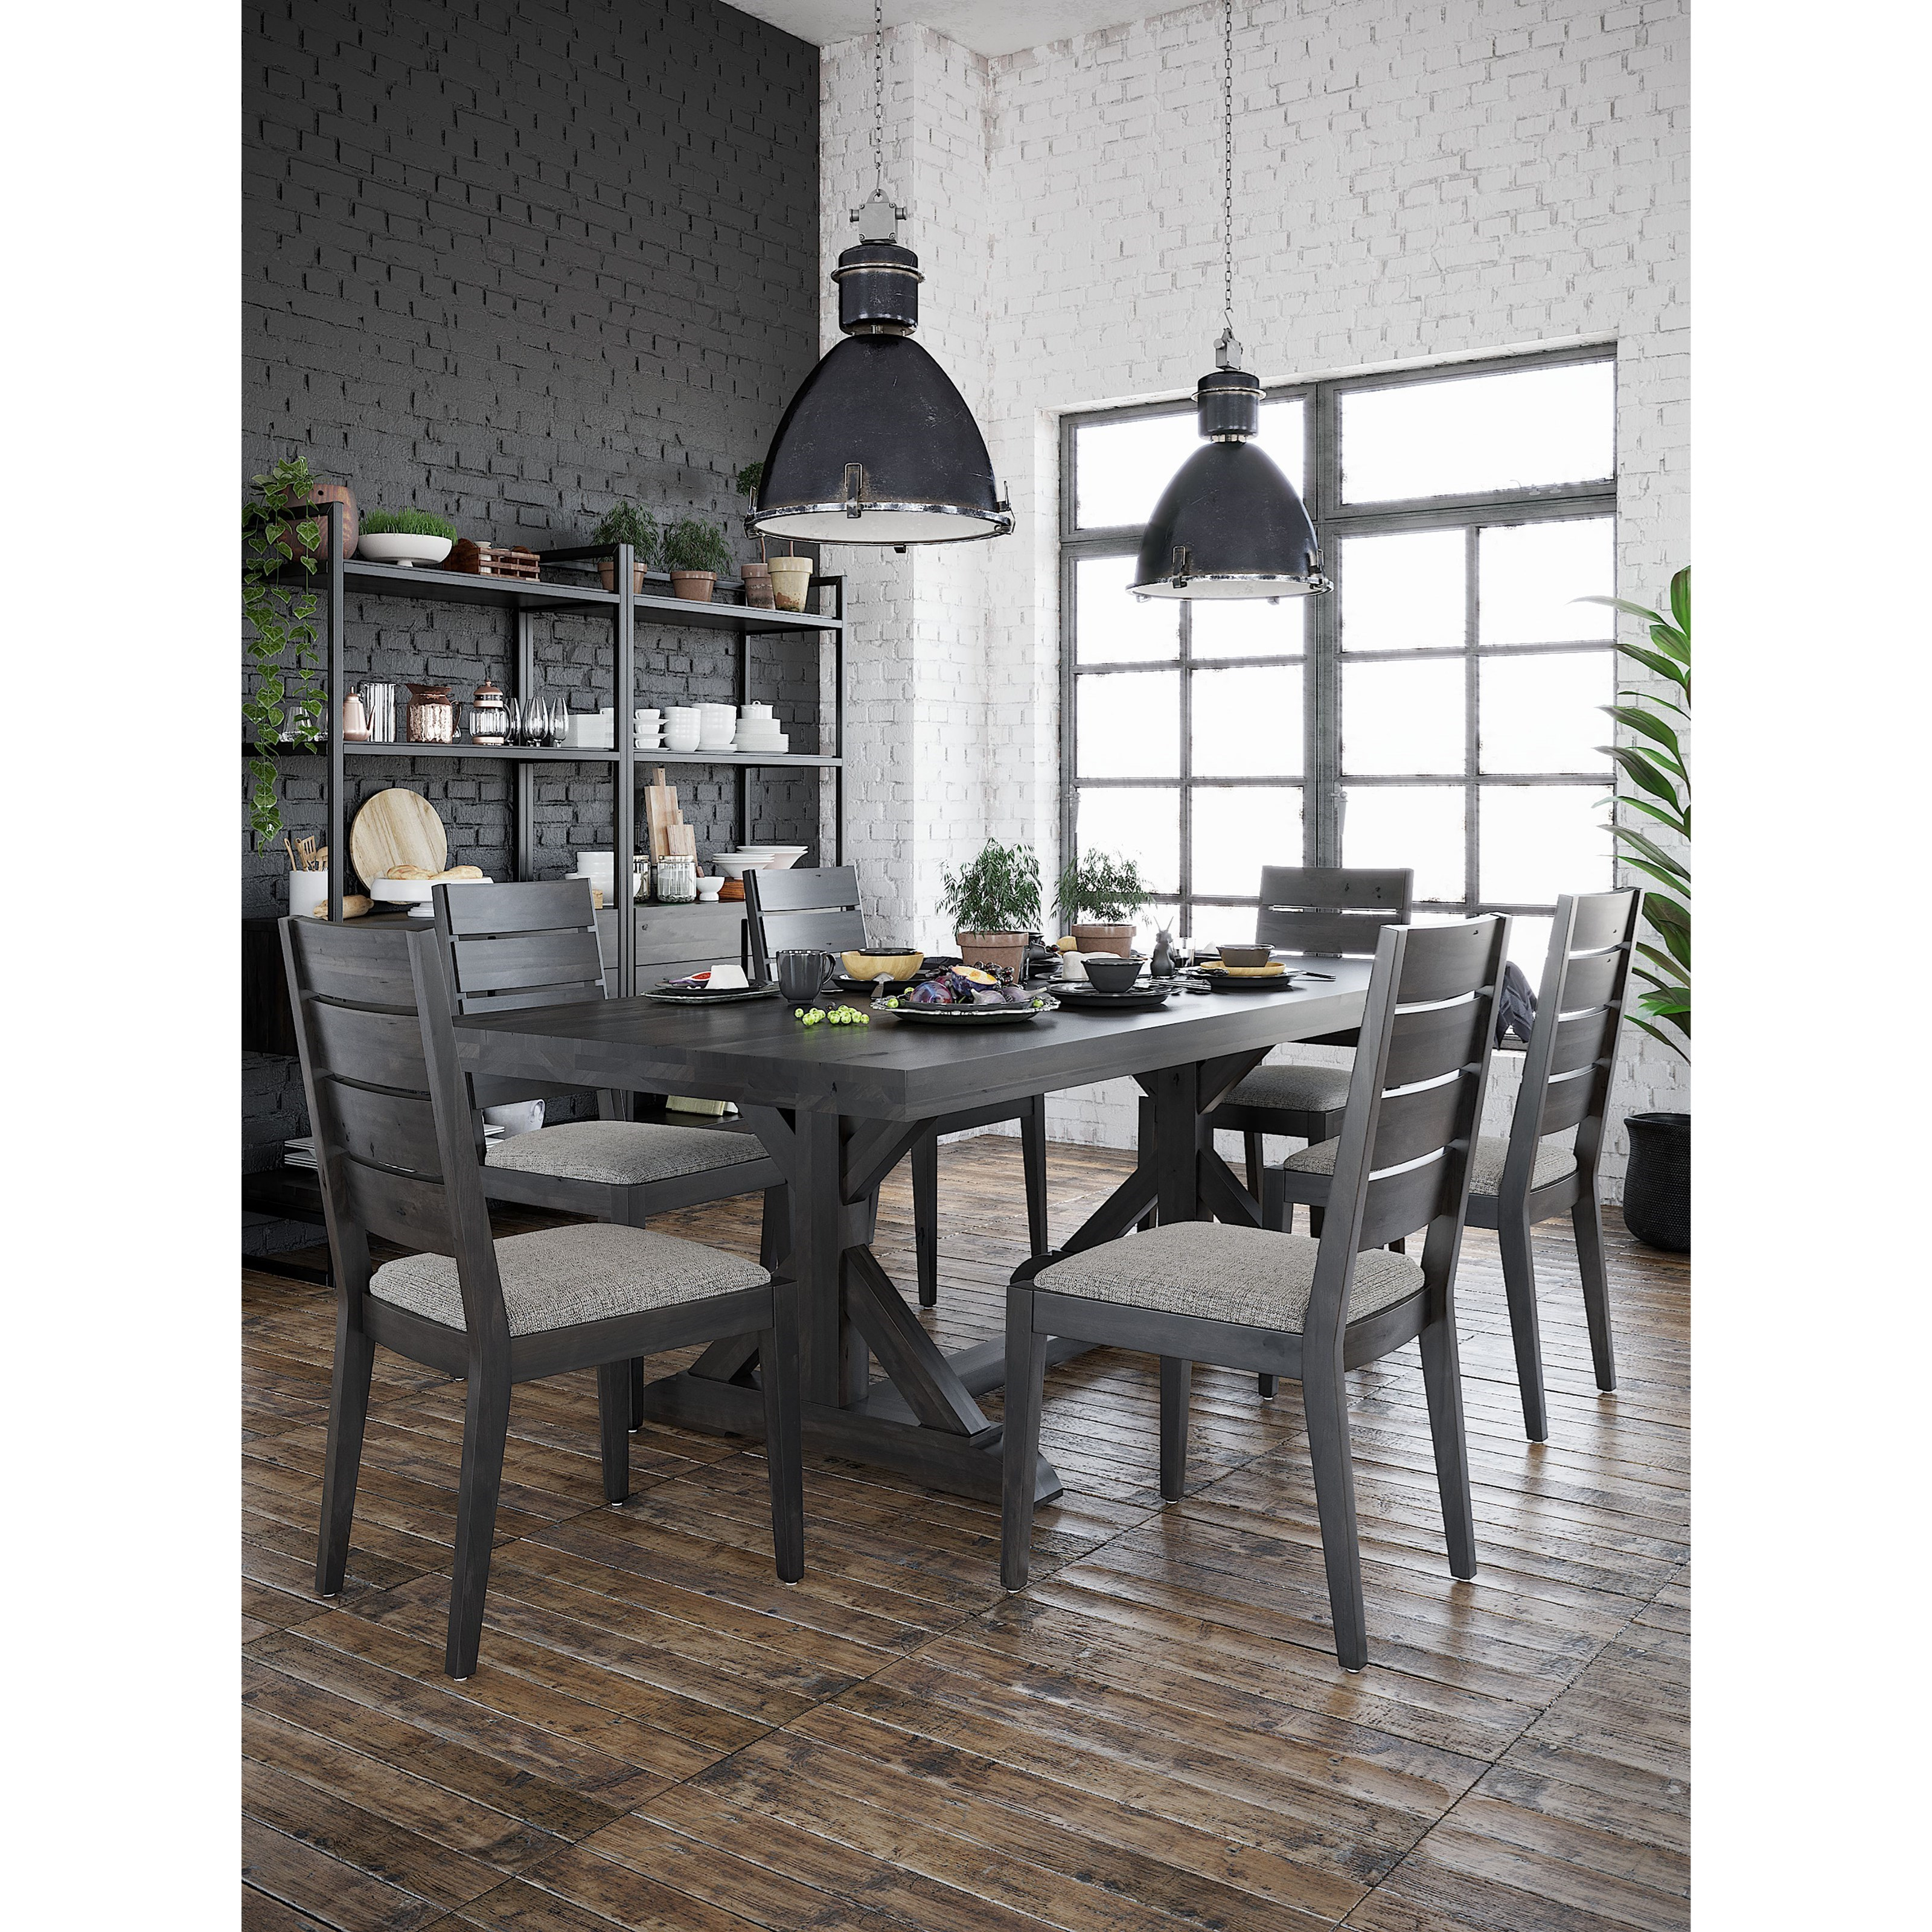 Loft - Custom Dining Dining Room Group by Canadel at Dinette Depot